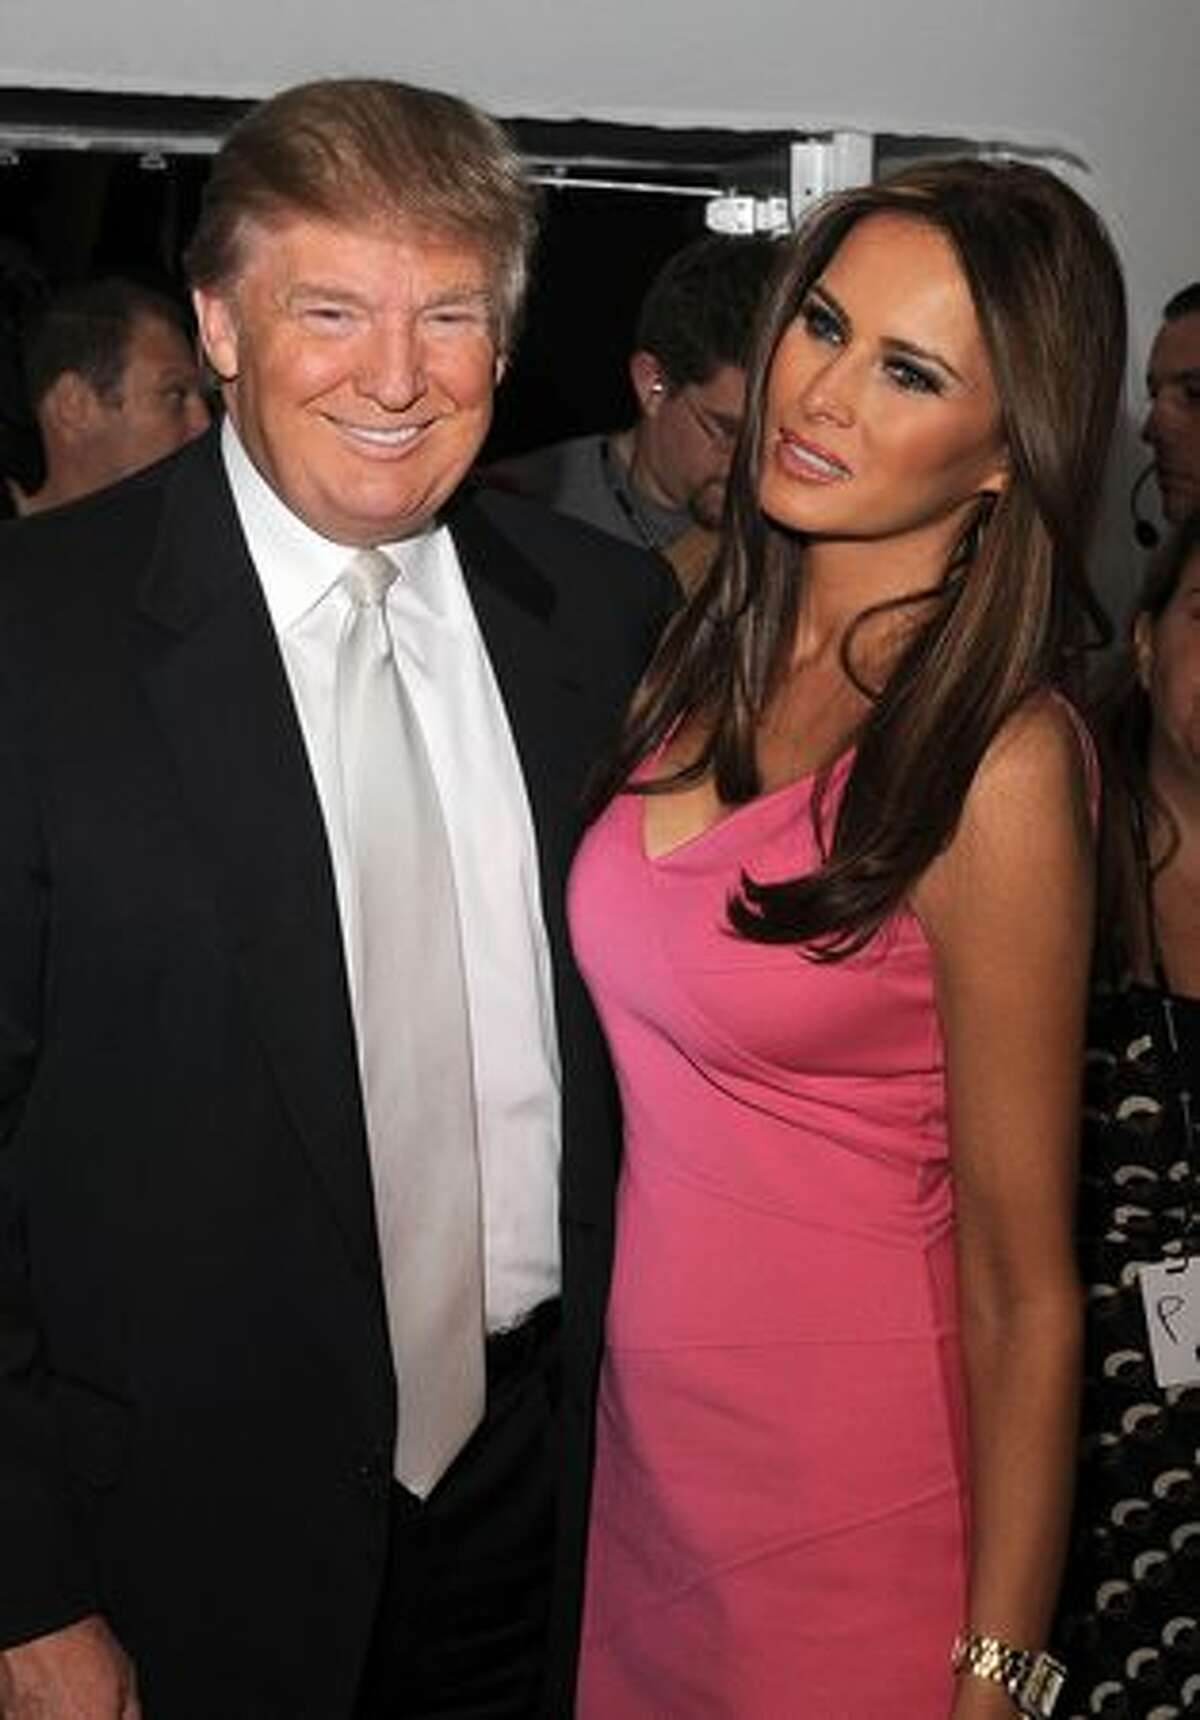 Donald Trump, 54, and wife Melania Trump, a 30-year-old model, are seen around Lincoln Center during Mercedes-Benz Fashion Week on September 15, 2010 in New York City.